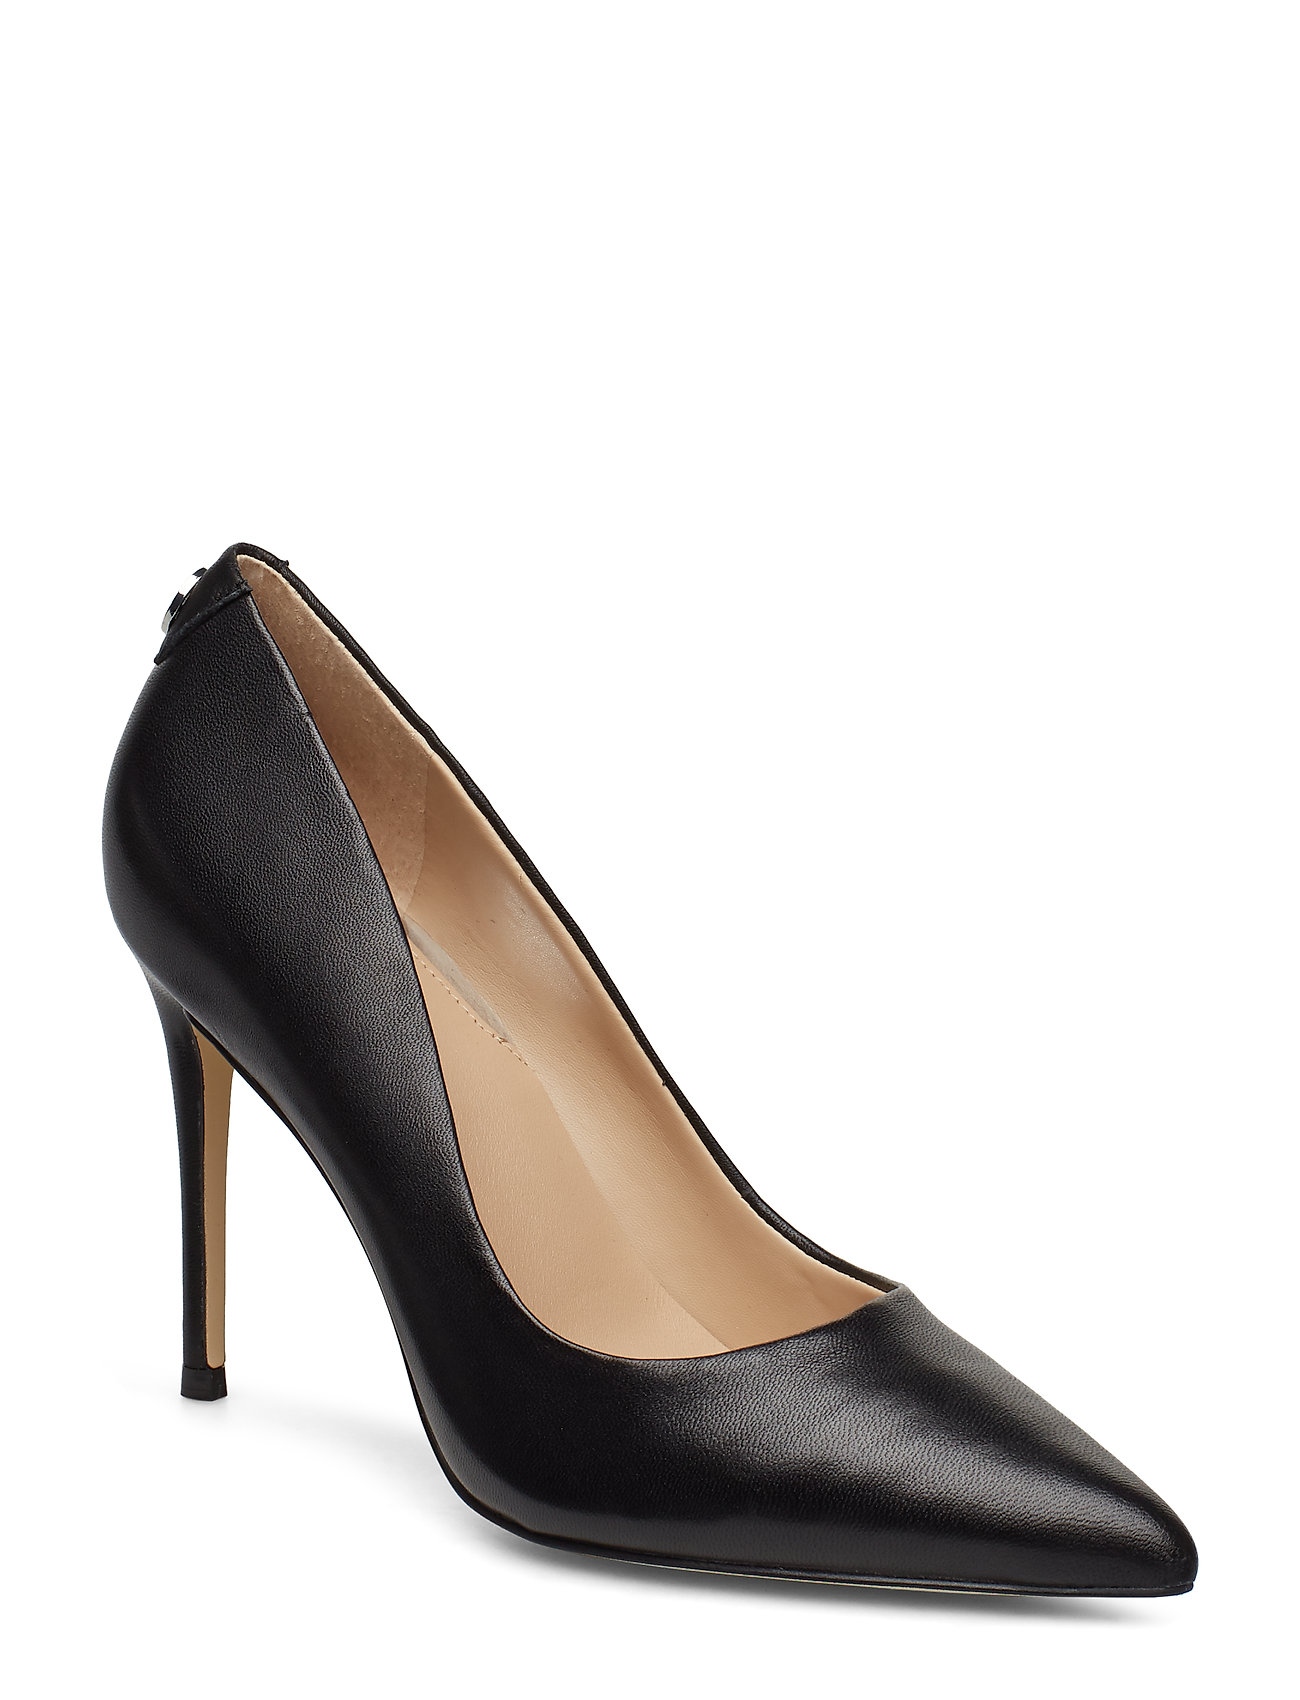 GUESS BELAN3/DECOLLETE (PUMP)/LEATHE - BLACK